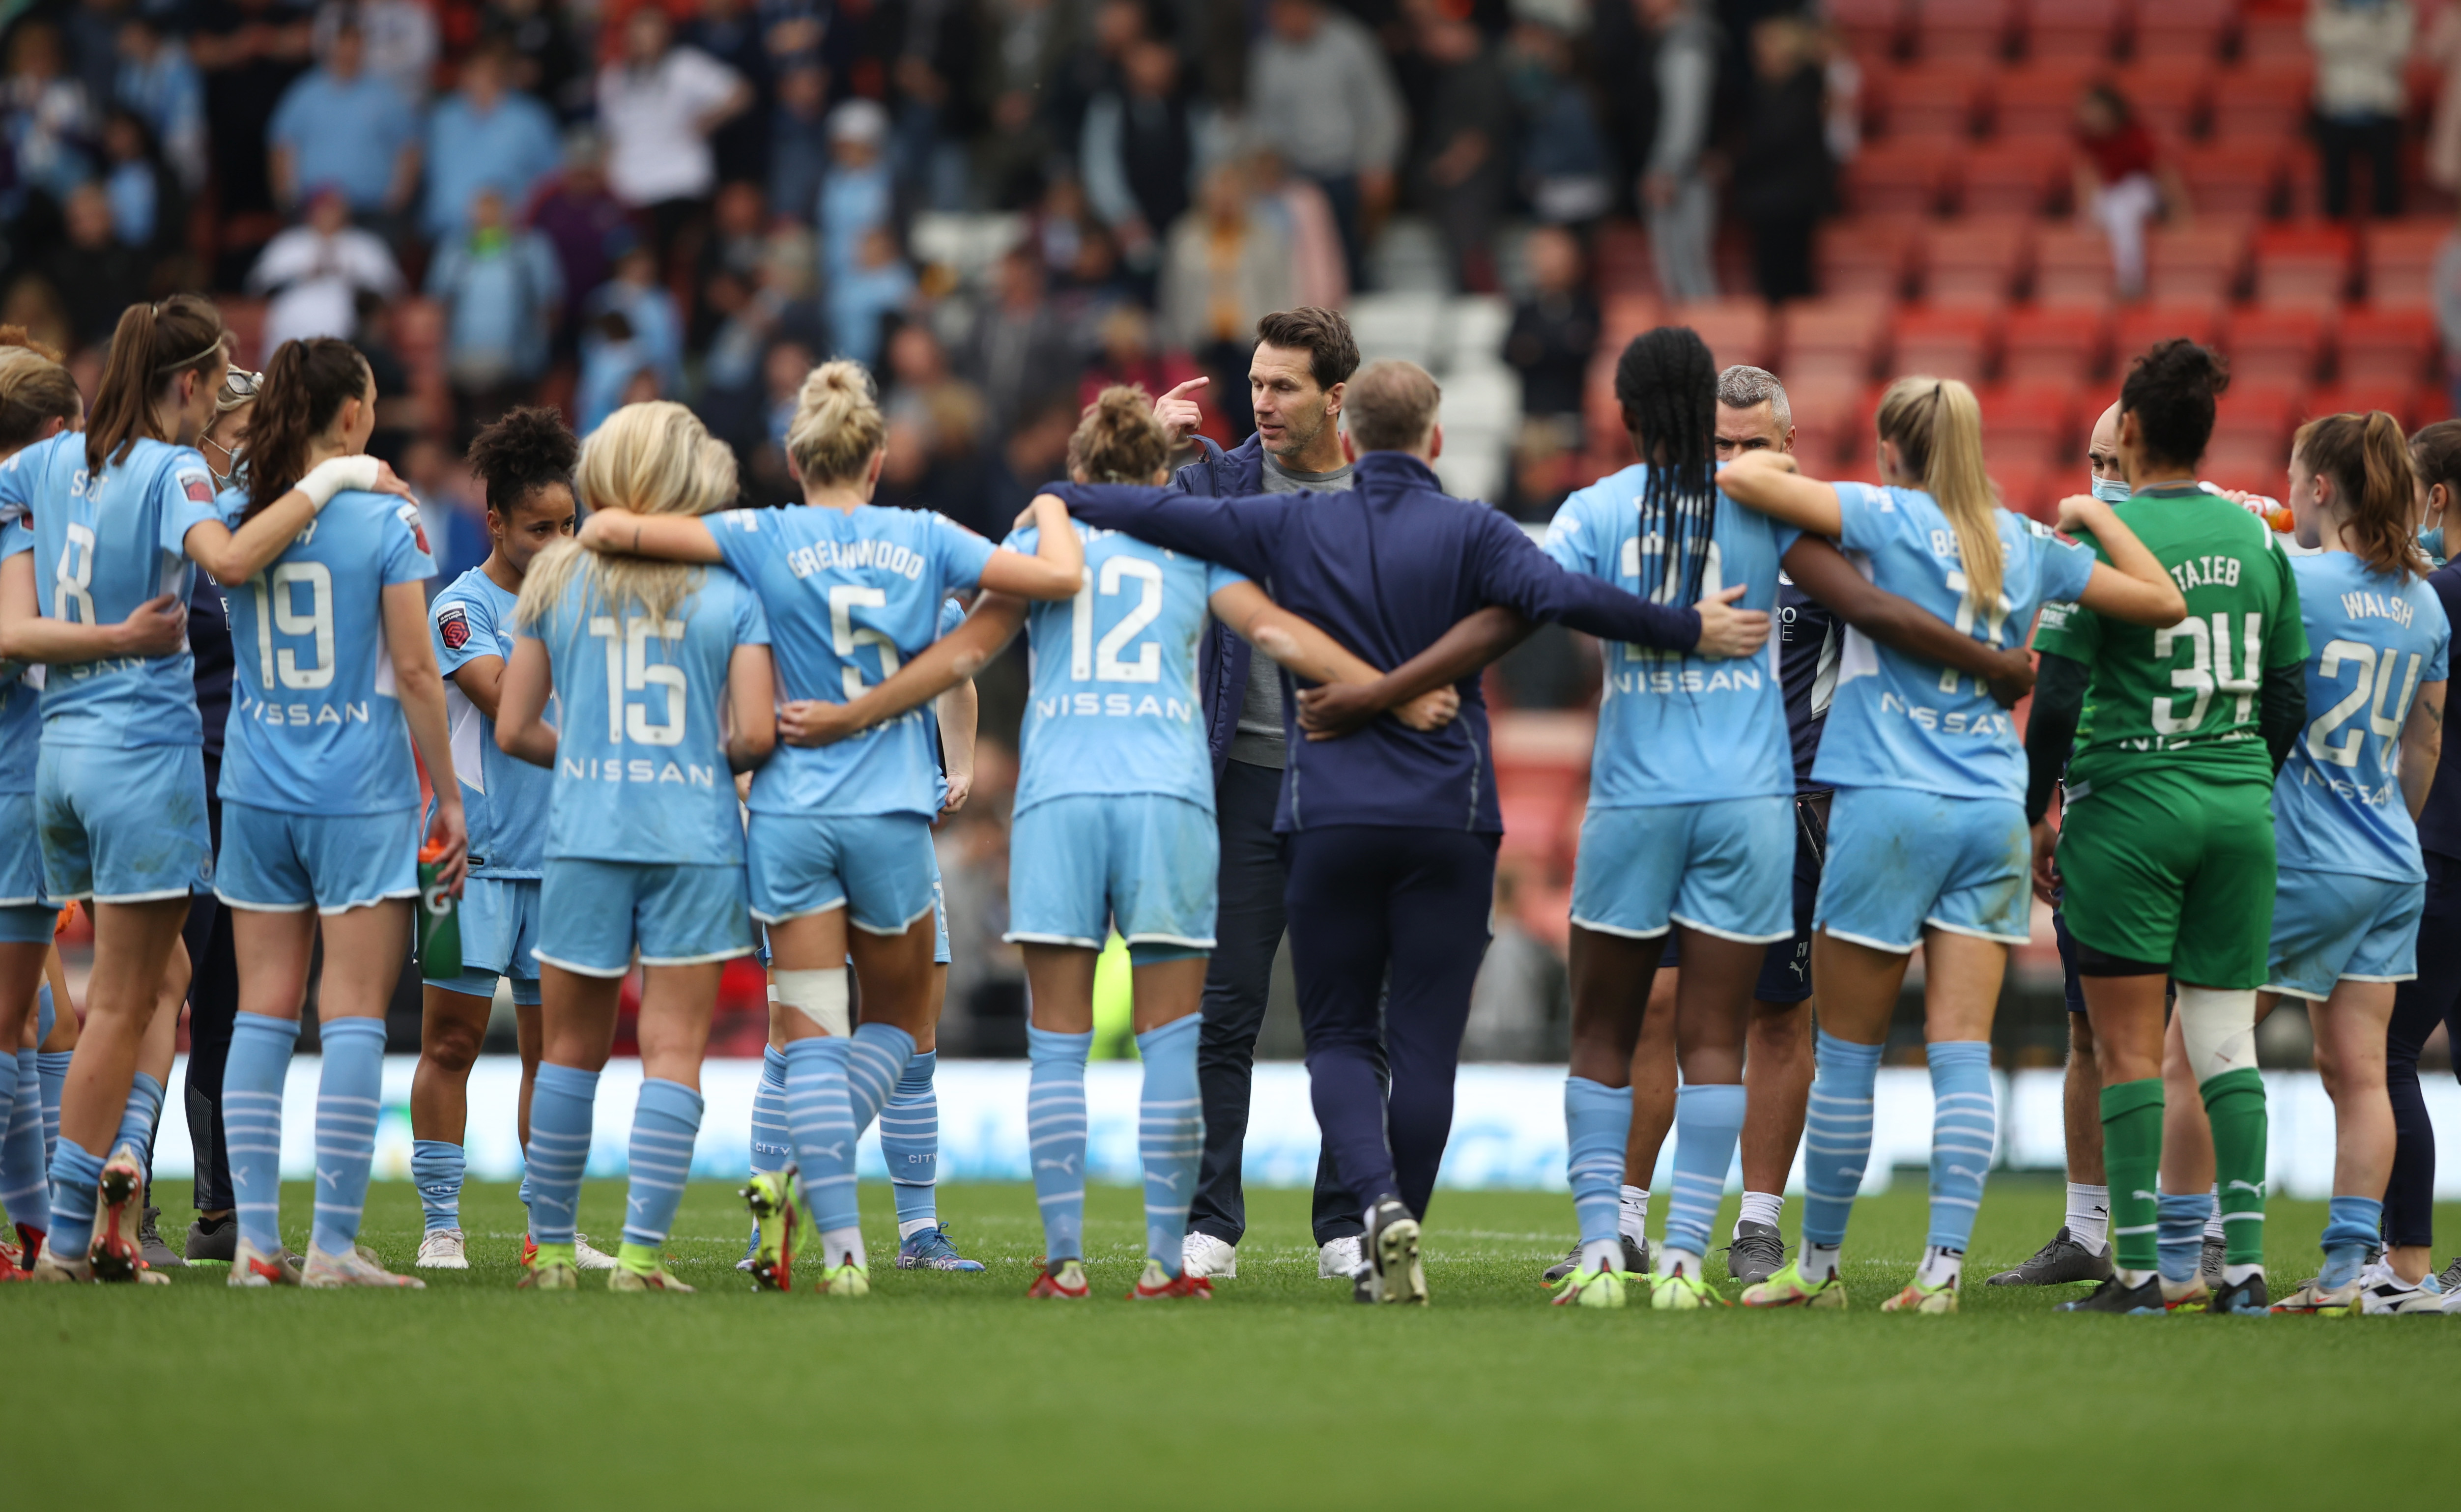 Soccer Football - Women's Super League - Manchester United v Manchester City - Leigh Sports Village, Britain - October 9, 2021  Manchester City players and staff huddle after the match Action Images via Reuters/Molly Darlington